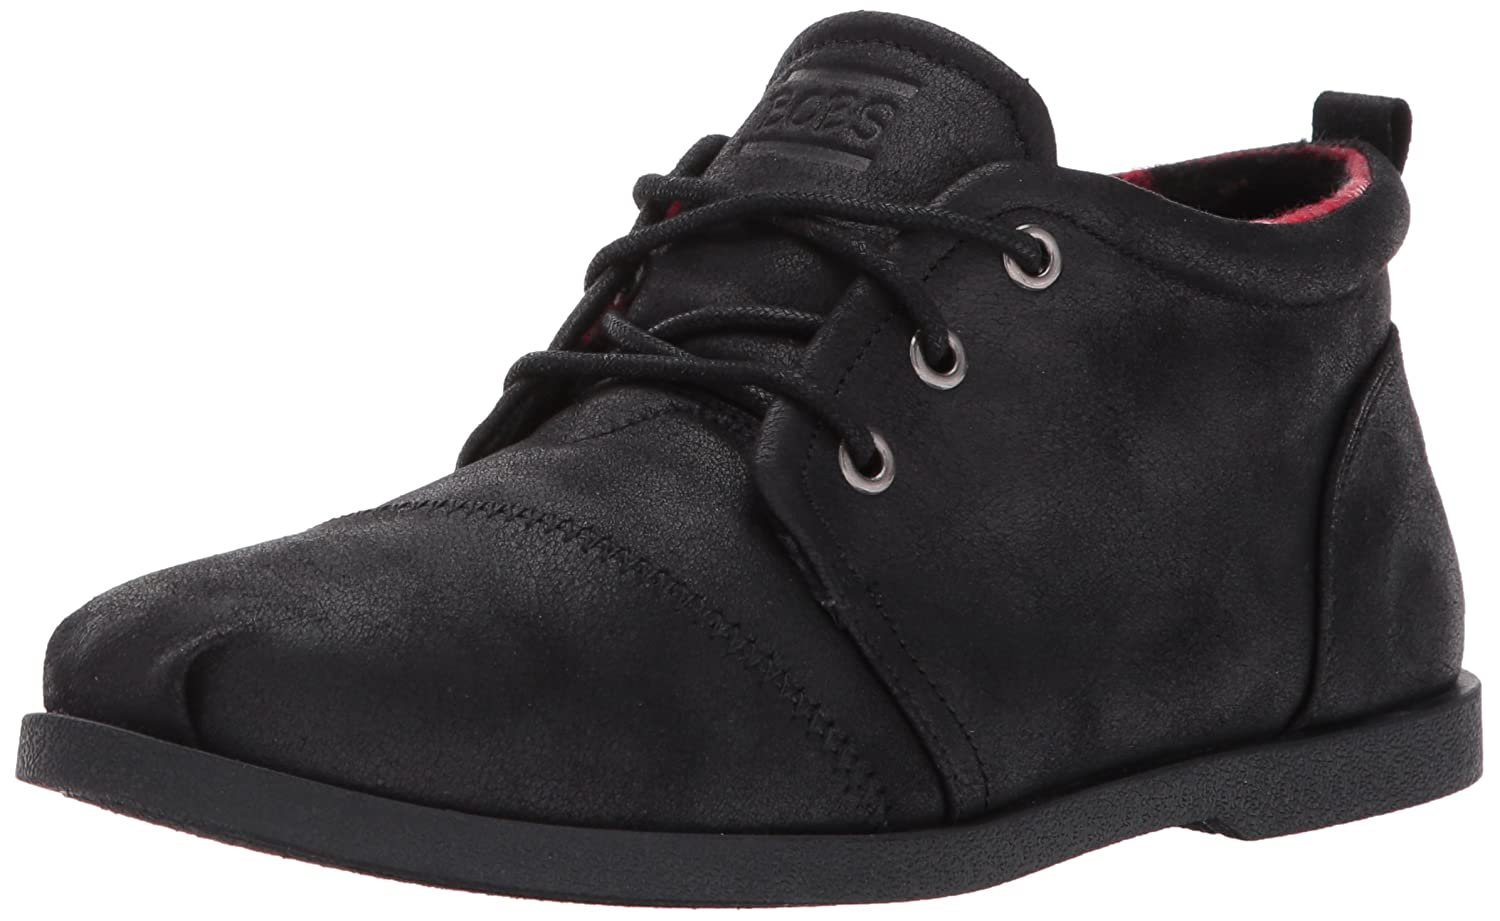 Skechers BOBS from Women's Chill Luxe-Drifting Flat B0713X5DTW 9.5 M US|Black/Black